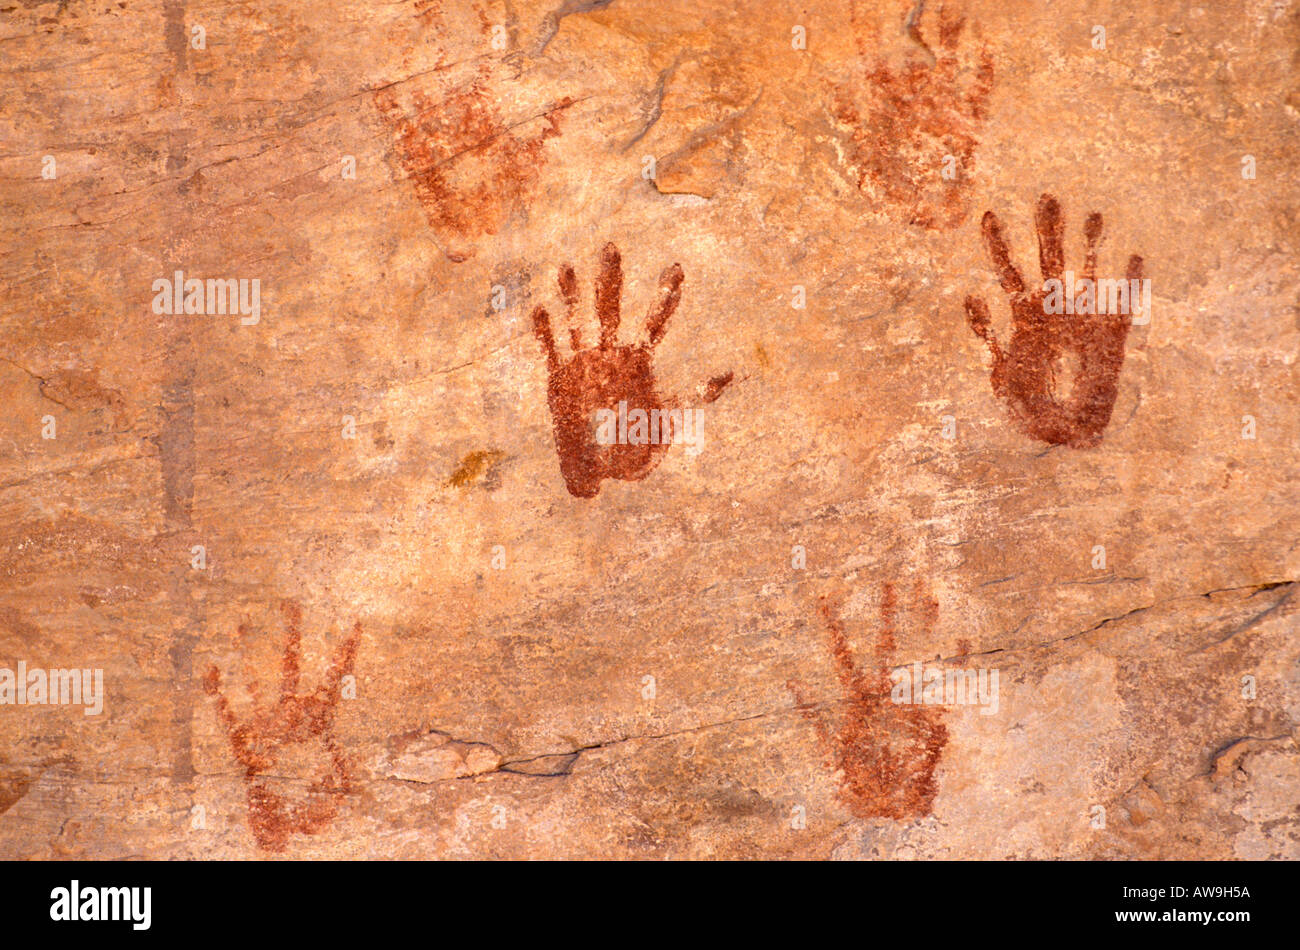 Anasazi hand prints at Turkey Pen Ruin Grand Gulch Primitive Area Utah - Stock Image